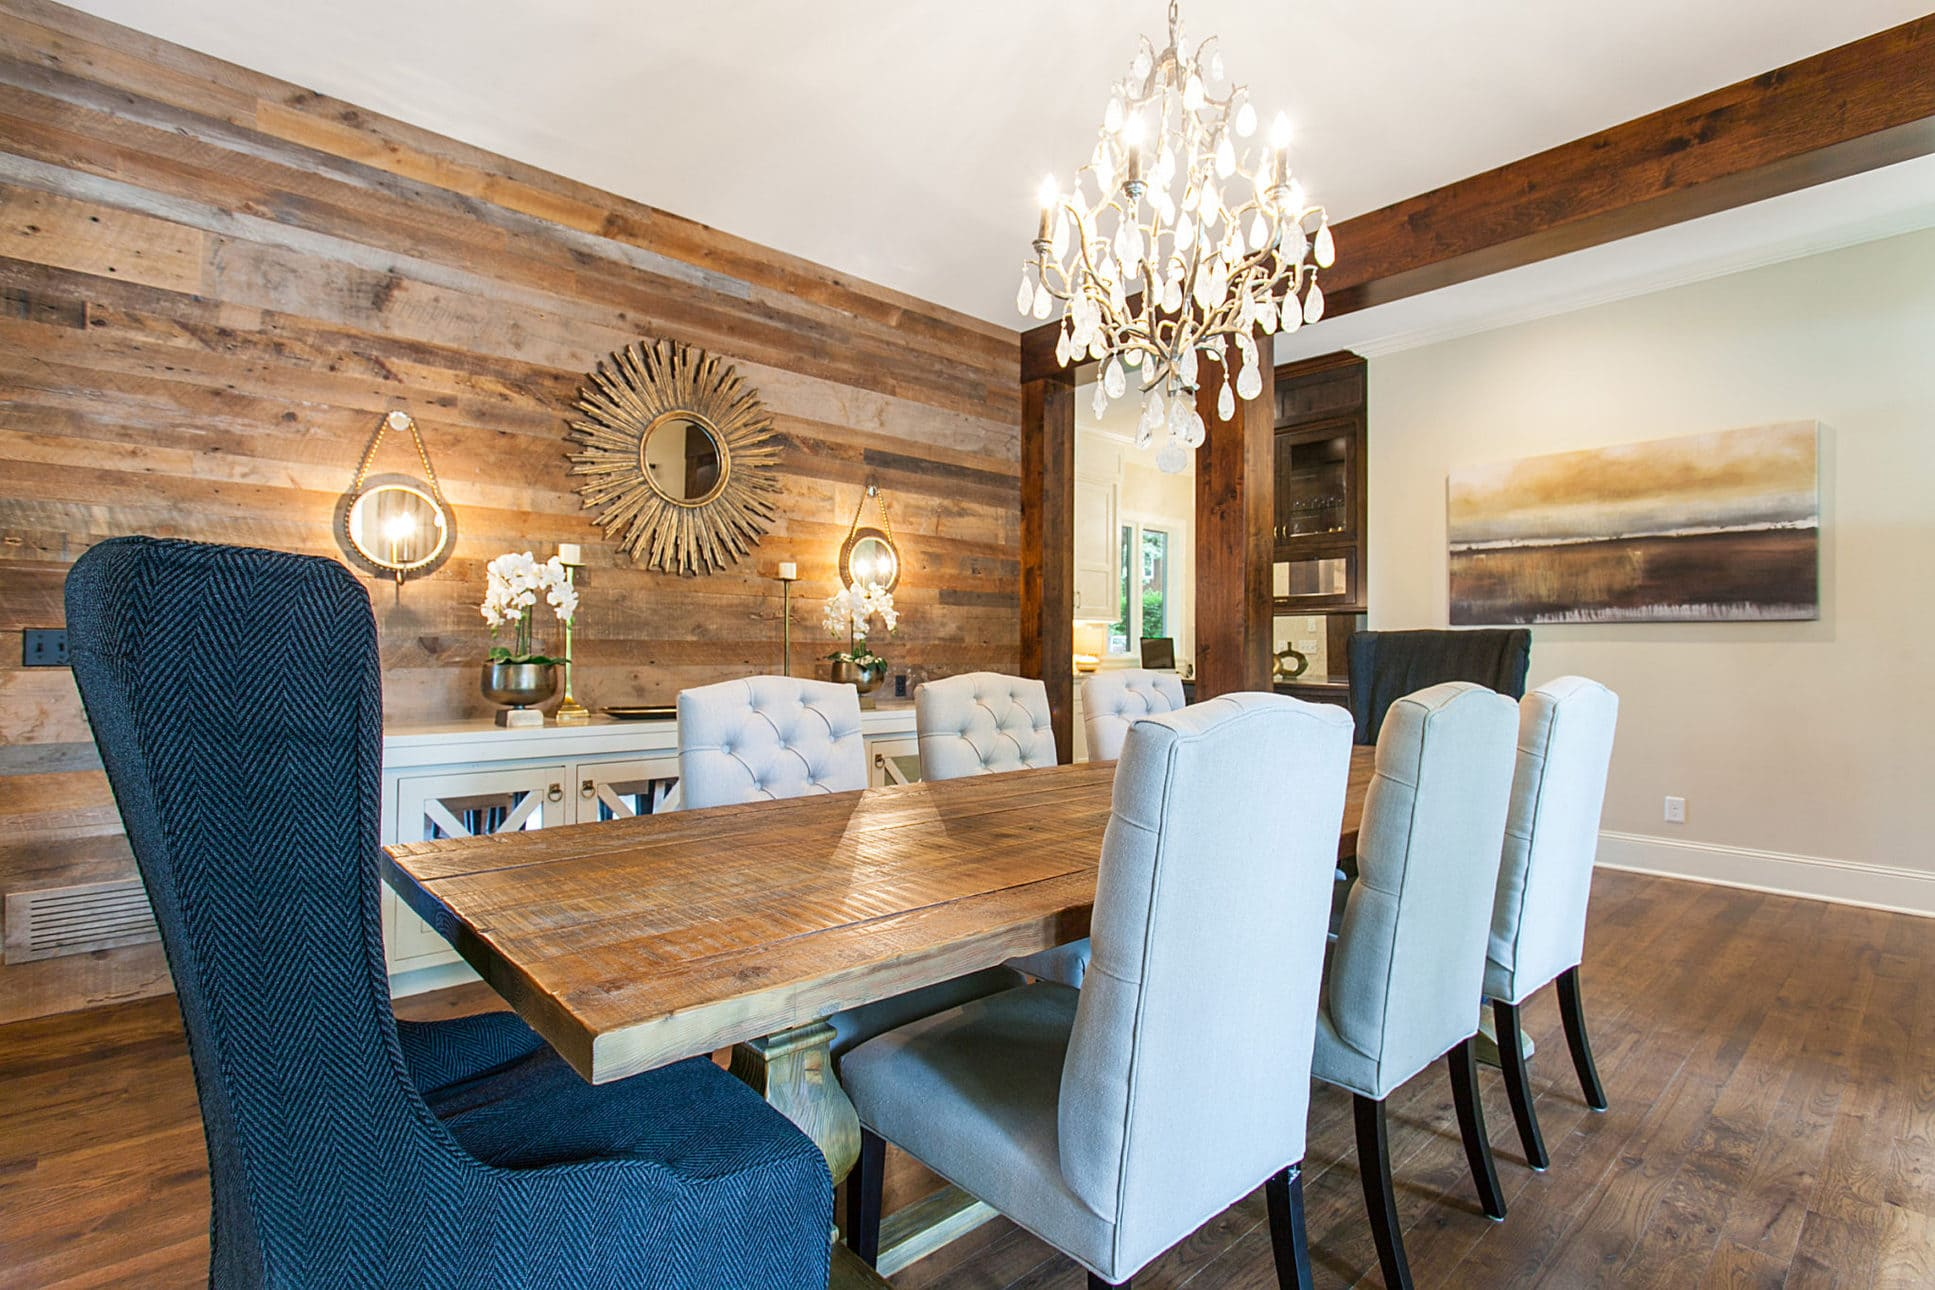 How to Finish Reclaimed Wood